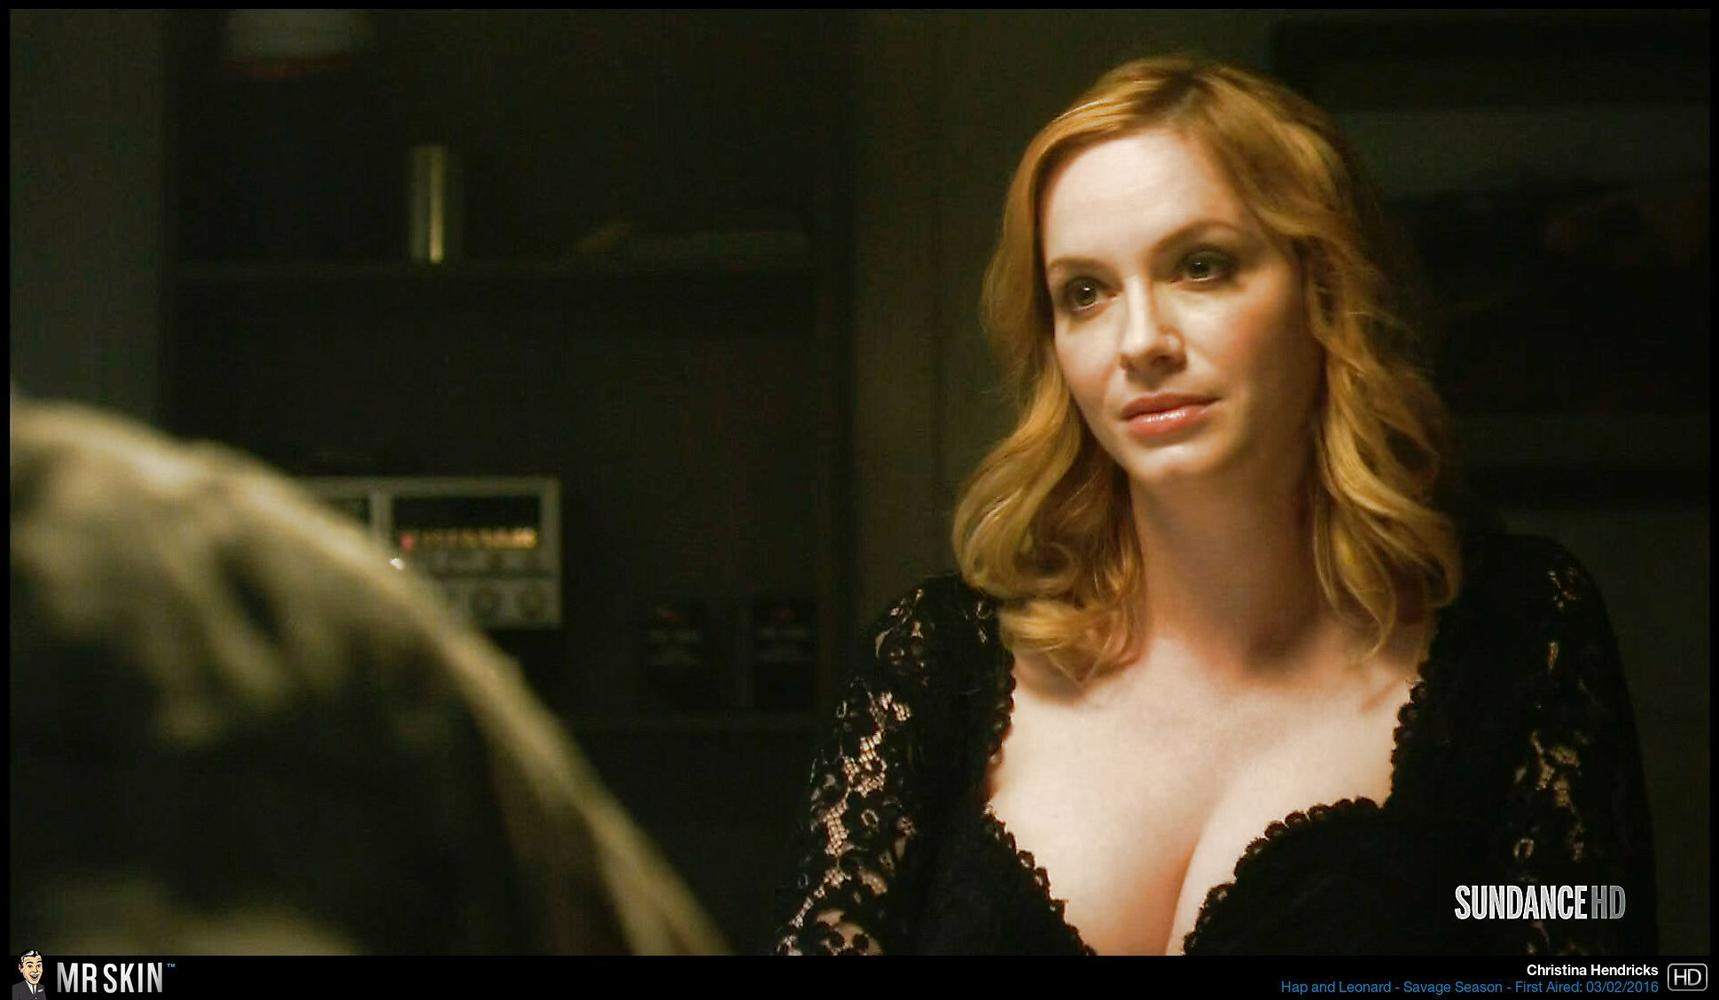 Heres A Christina Hendricks Appreciation Post Since She -2467